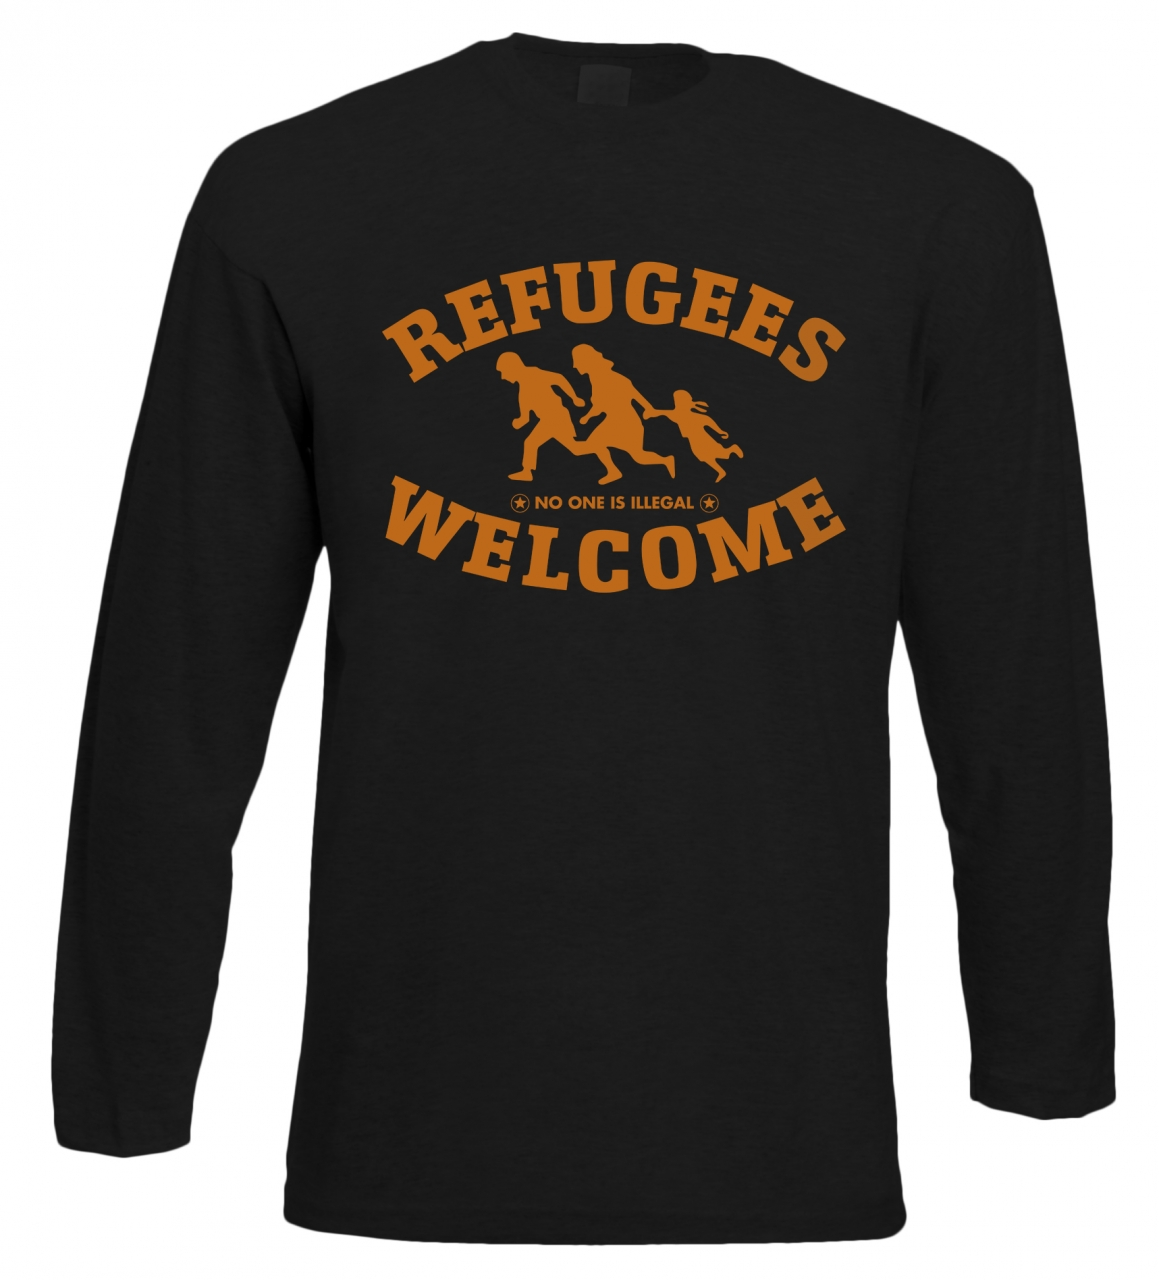 Refugees welcome Langarm Shirt Schwarz mit orangener Aufschrift - No one is illegal